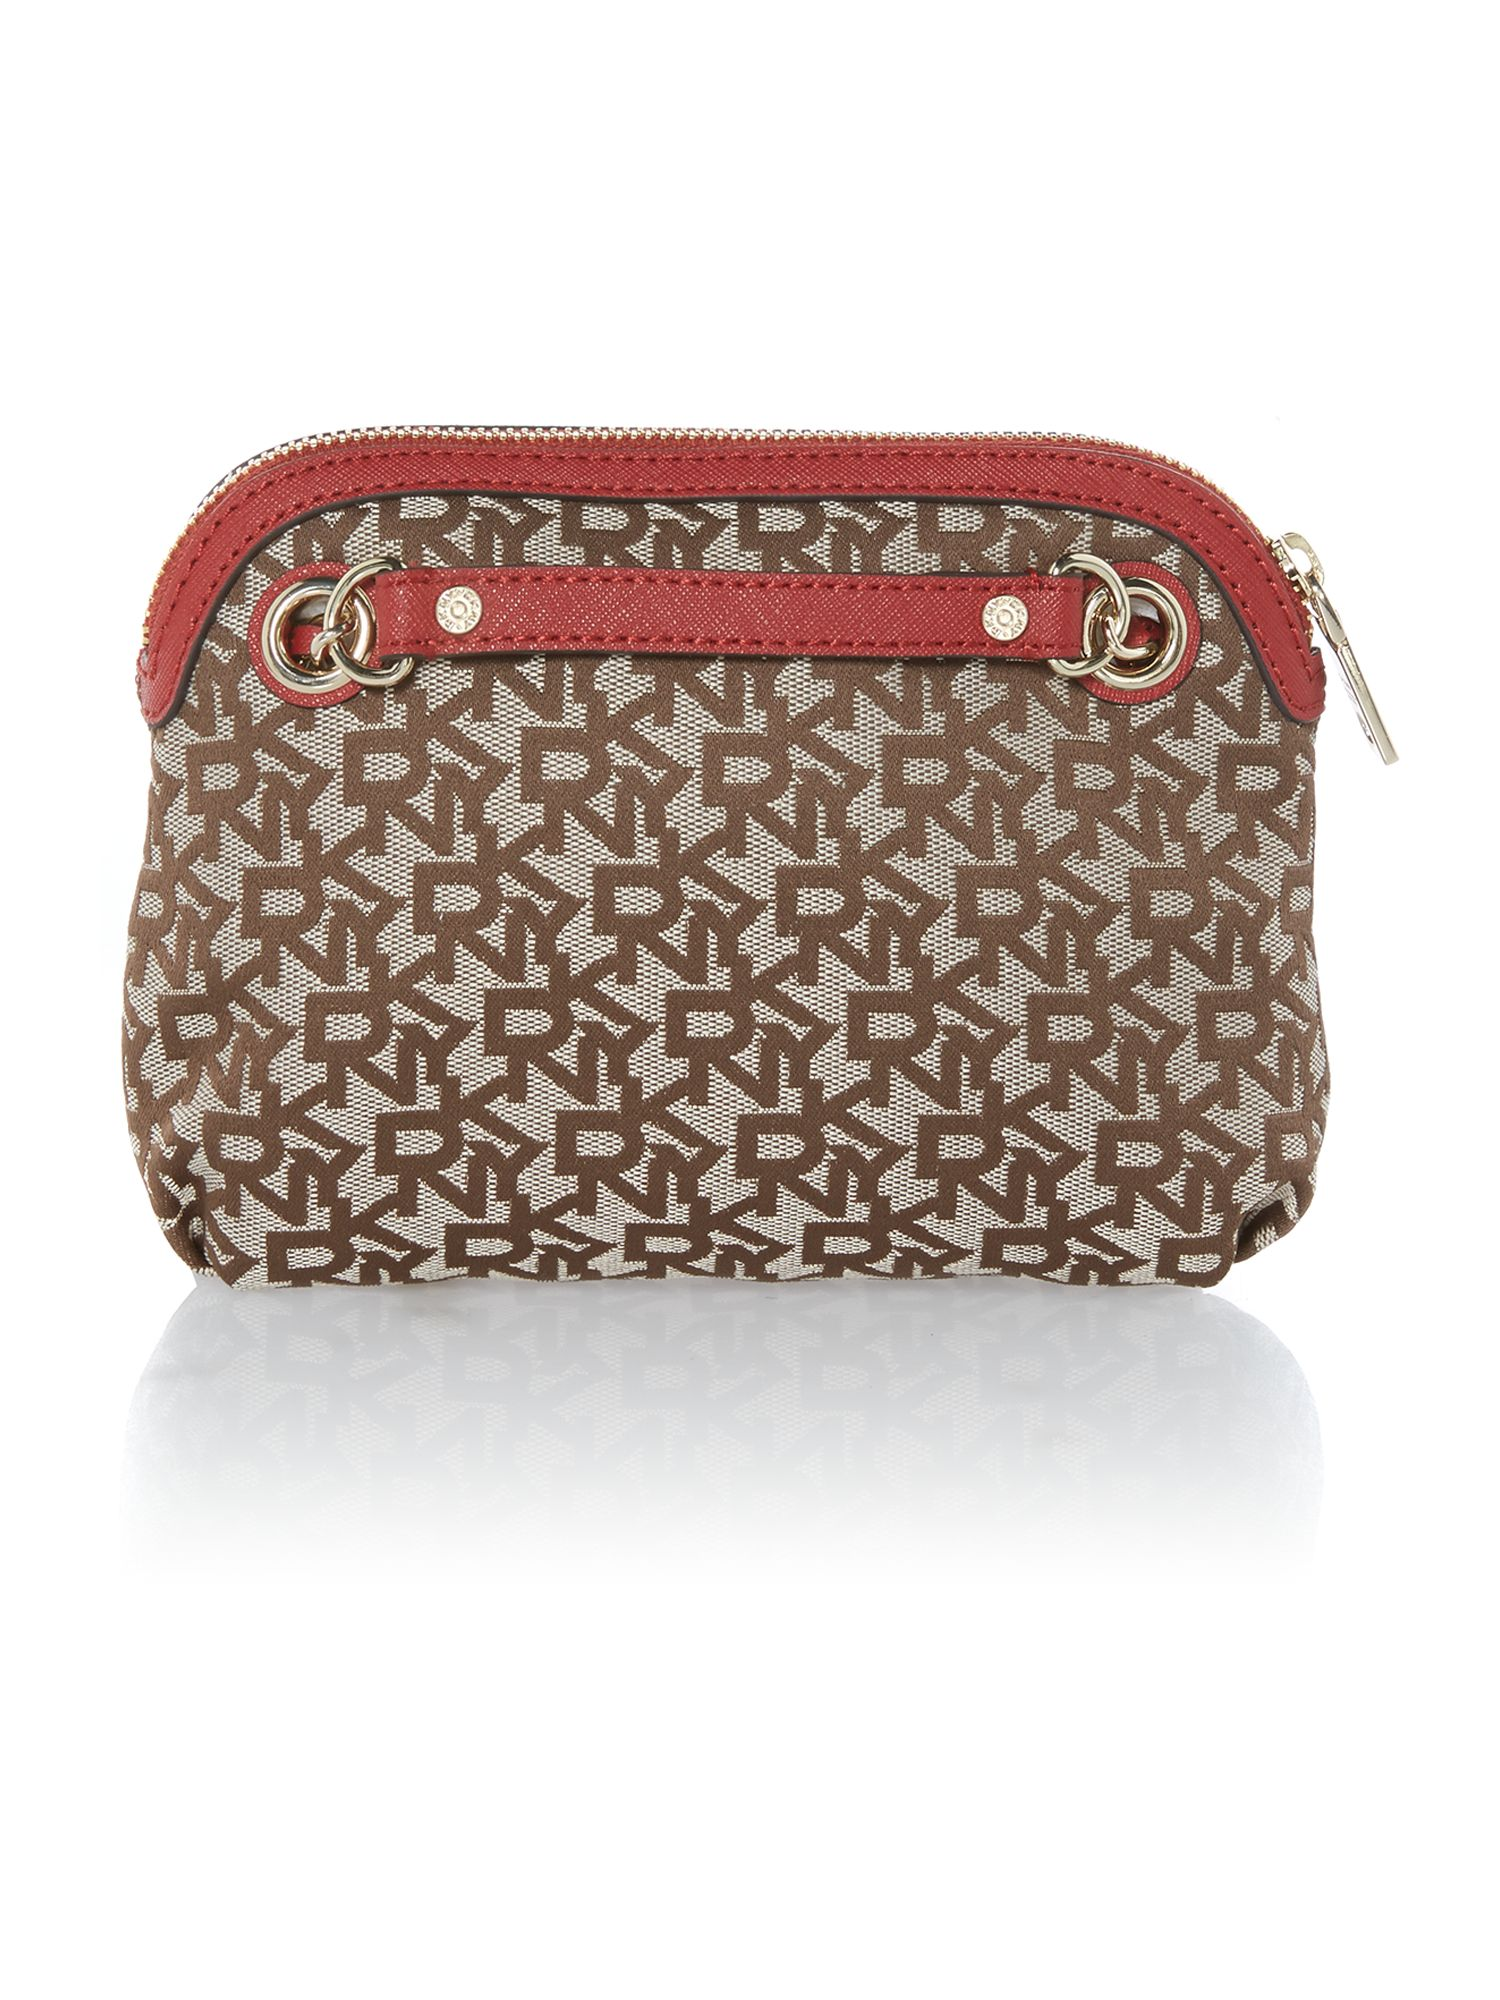 Saffiano red small crossbody bag